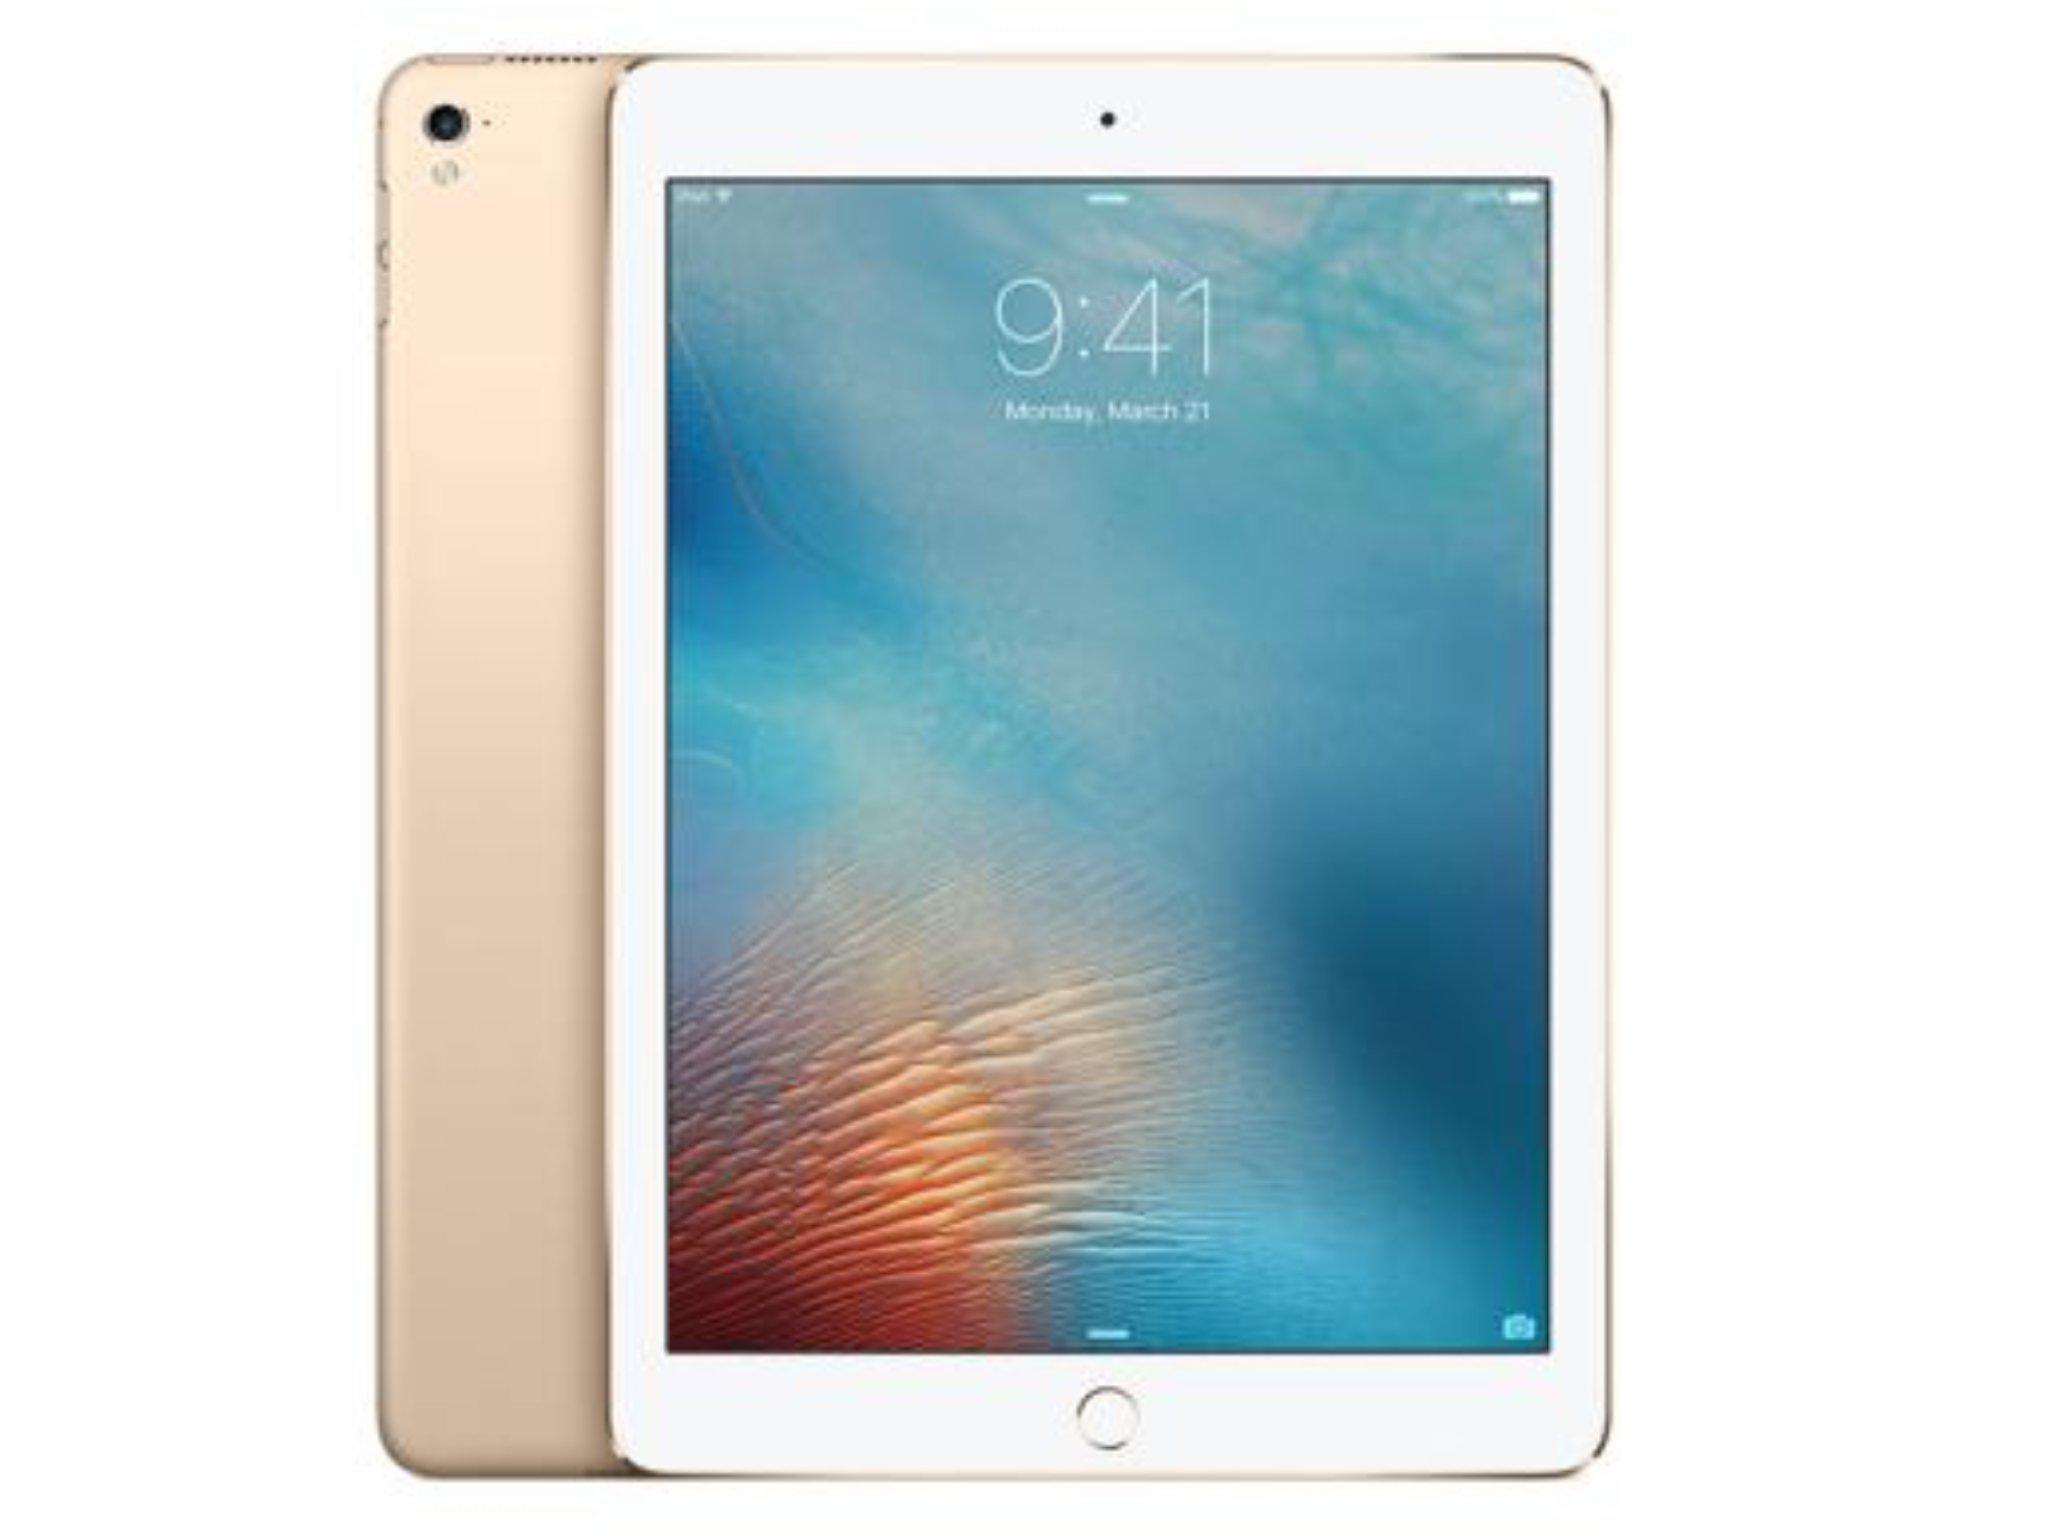 Apple iPad 5th Gen 2017 9.7'' 32GB Gold (Unlocked) (Certified Refurbished)